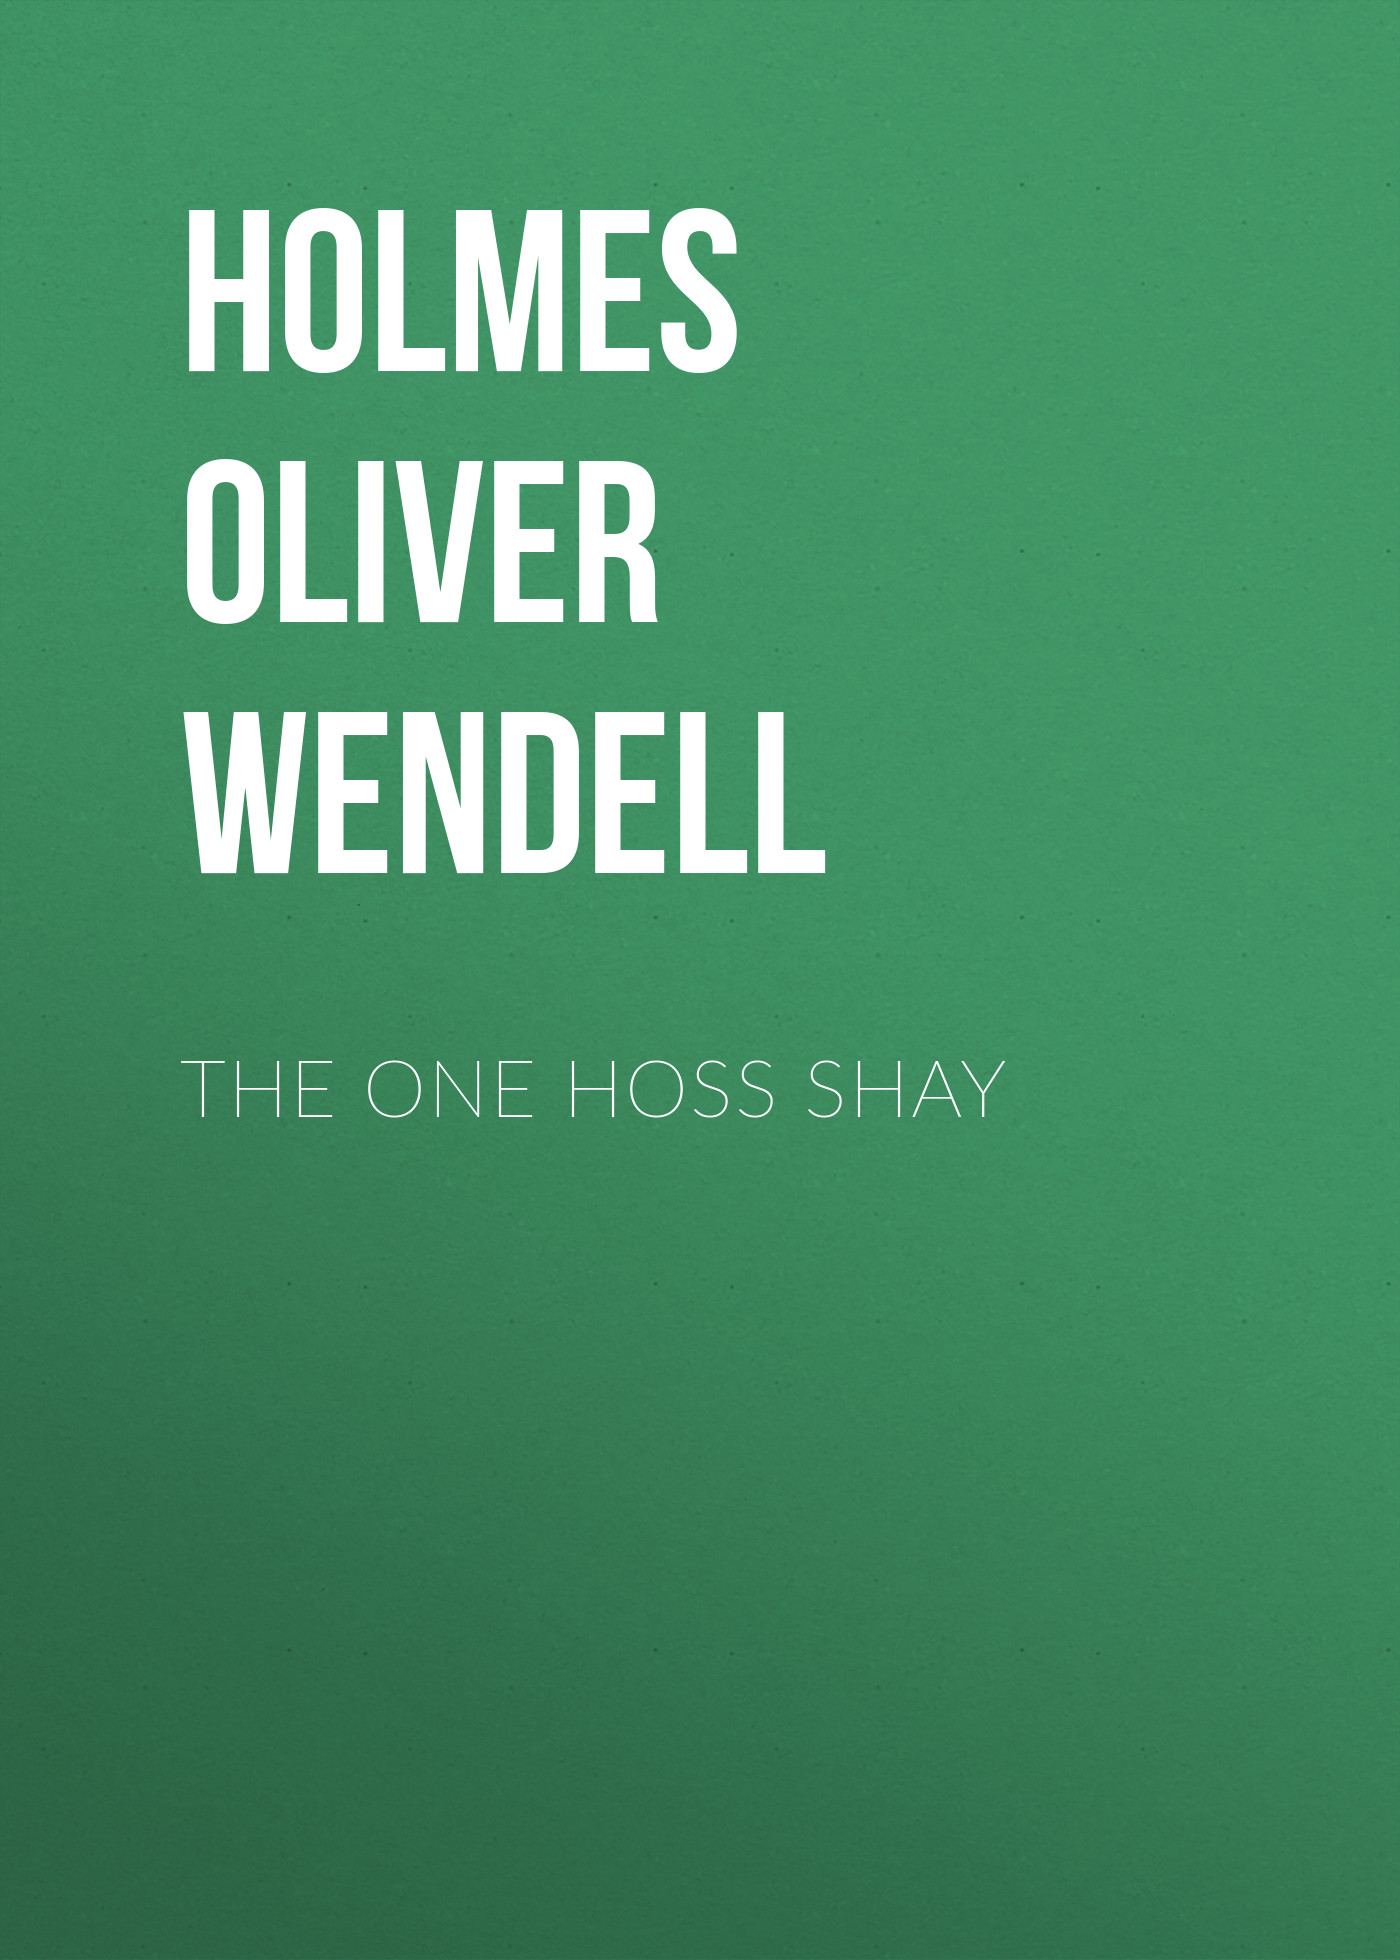 Holmes Oliver Wendell The One Hoss Shay